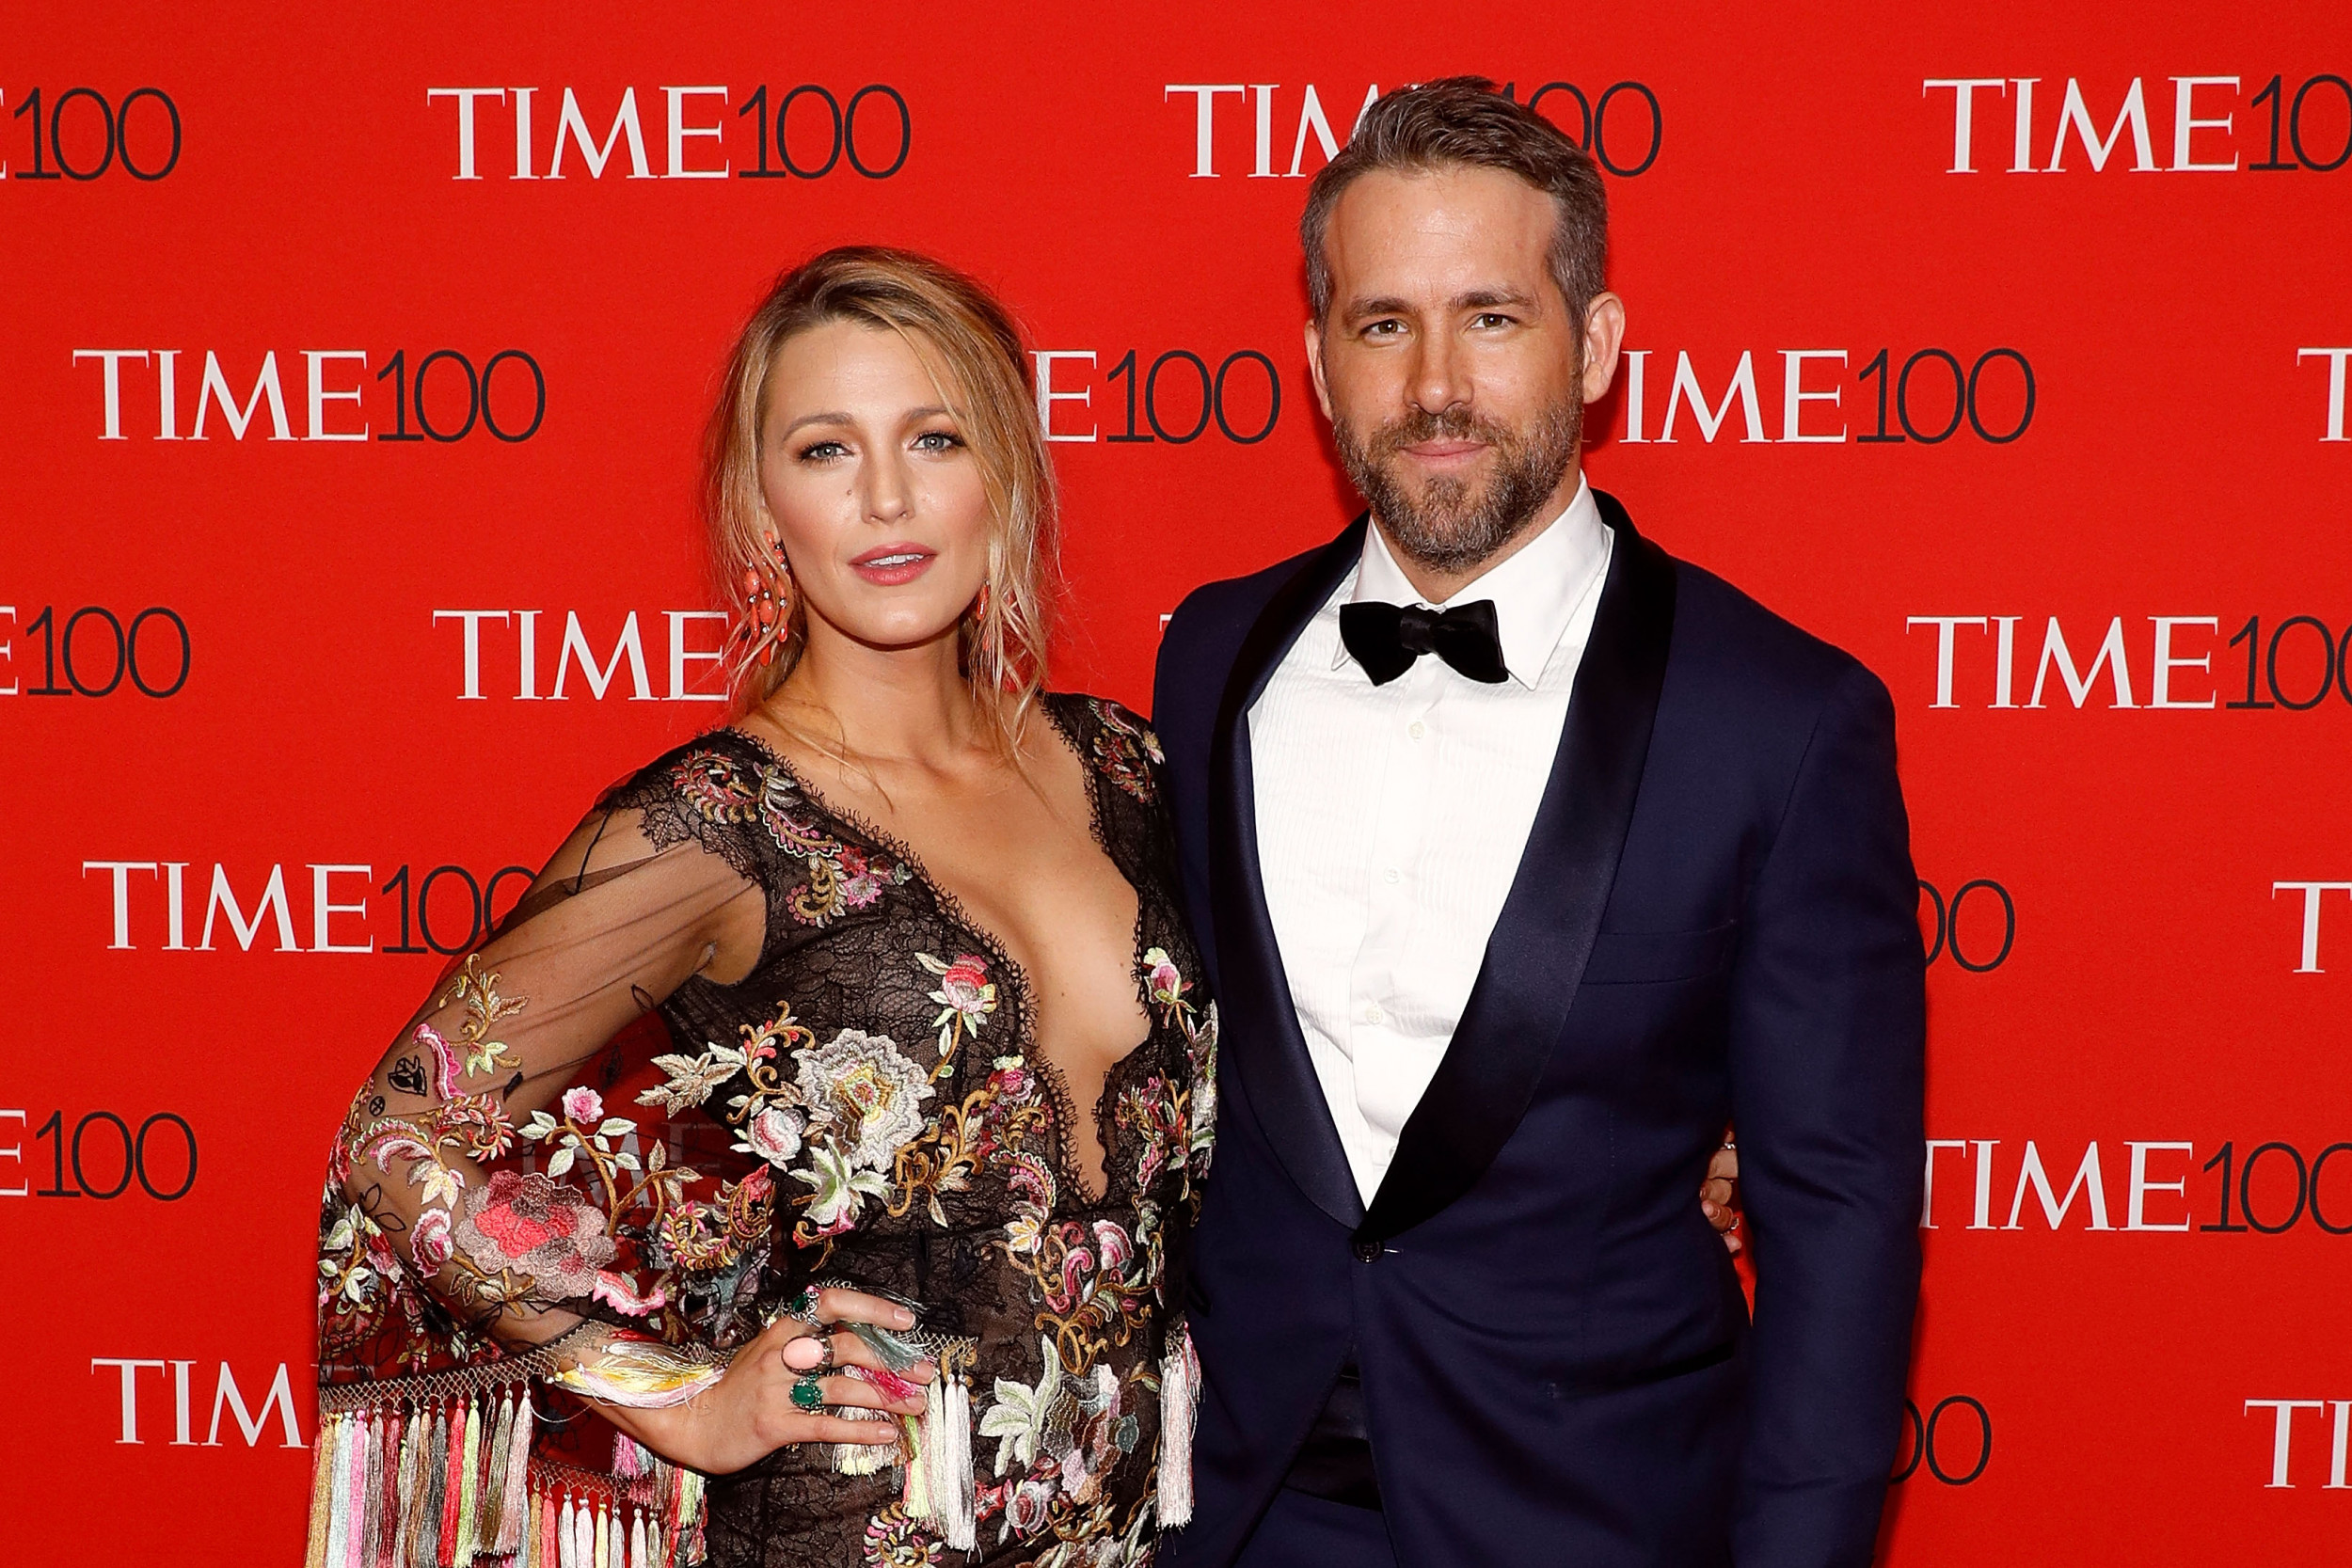 Ryan Reynolds and Blake Lively, who had their wedding on a plantation, donate $200,000 to the NAACP